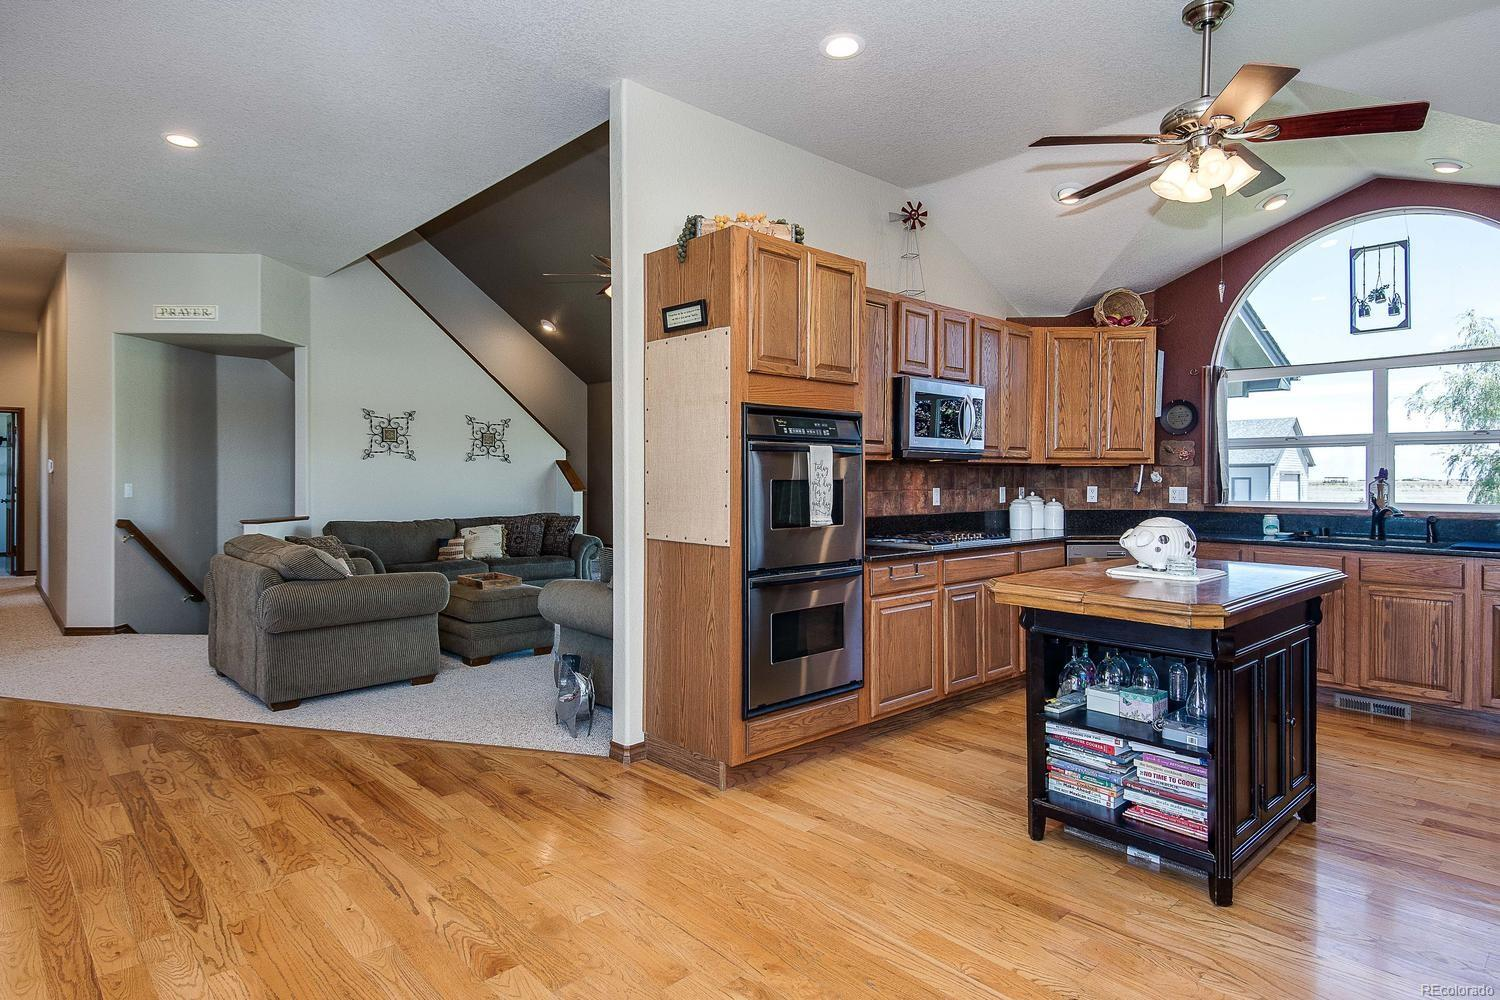 Built-in stove top, dual ovens and microwave